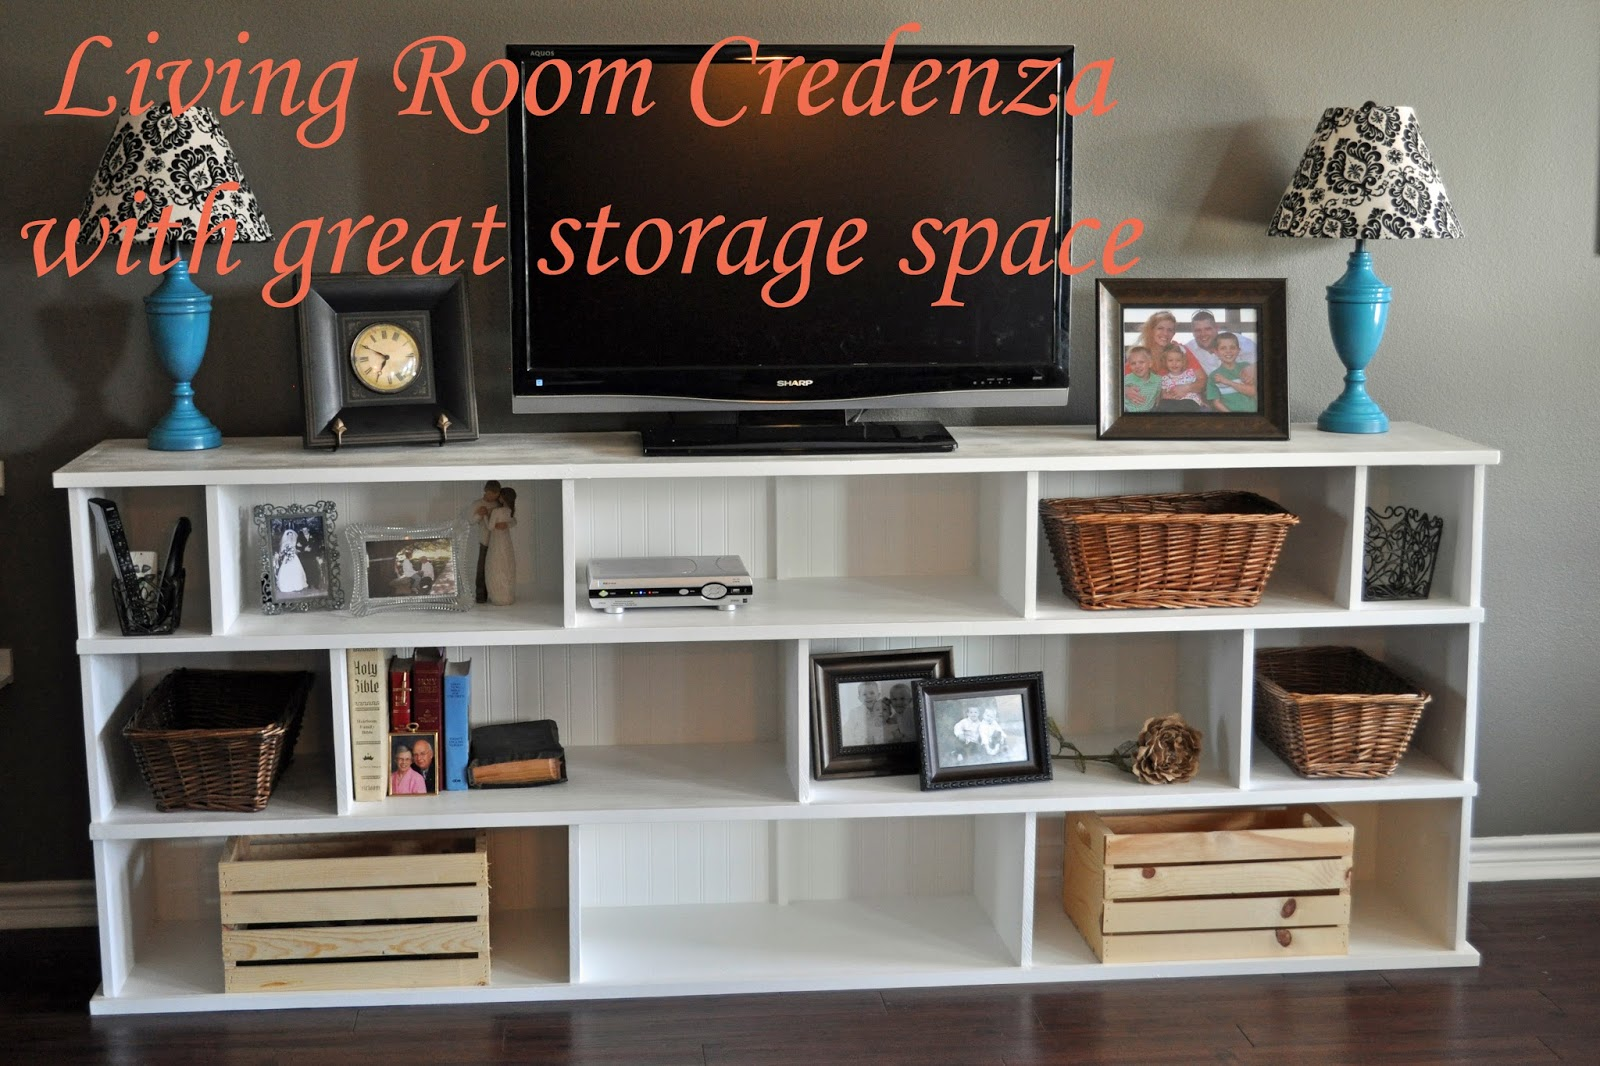 Right Where We Are Living Room Credenza With Great Storage Space